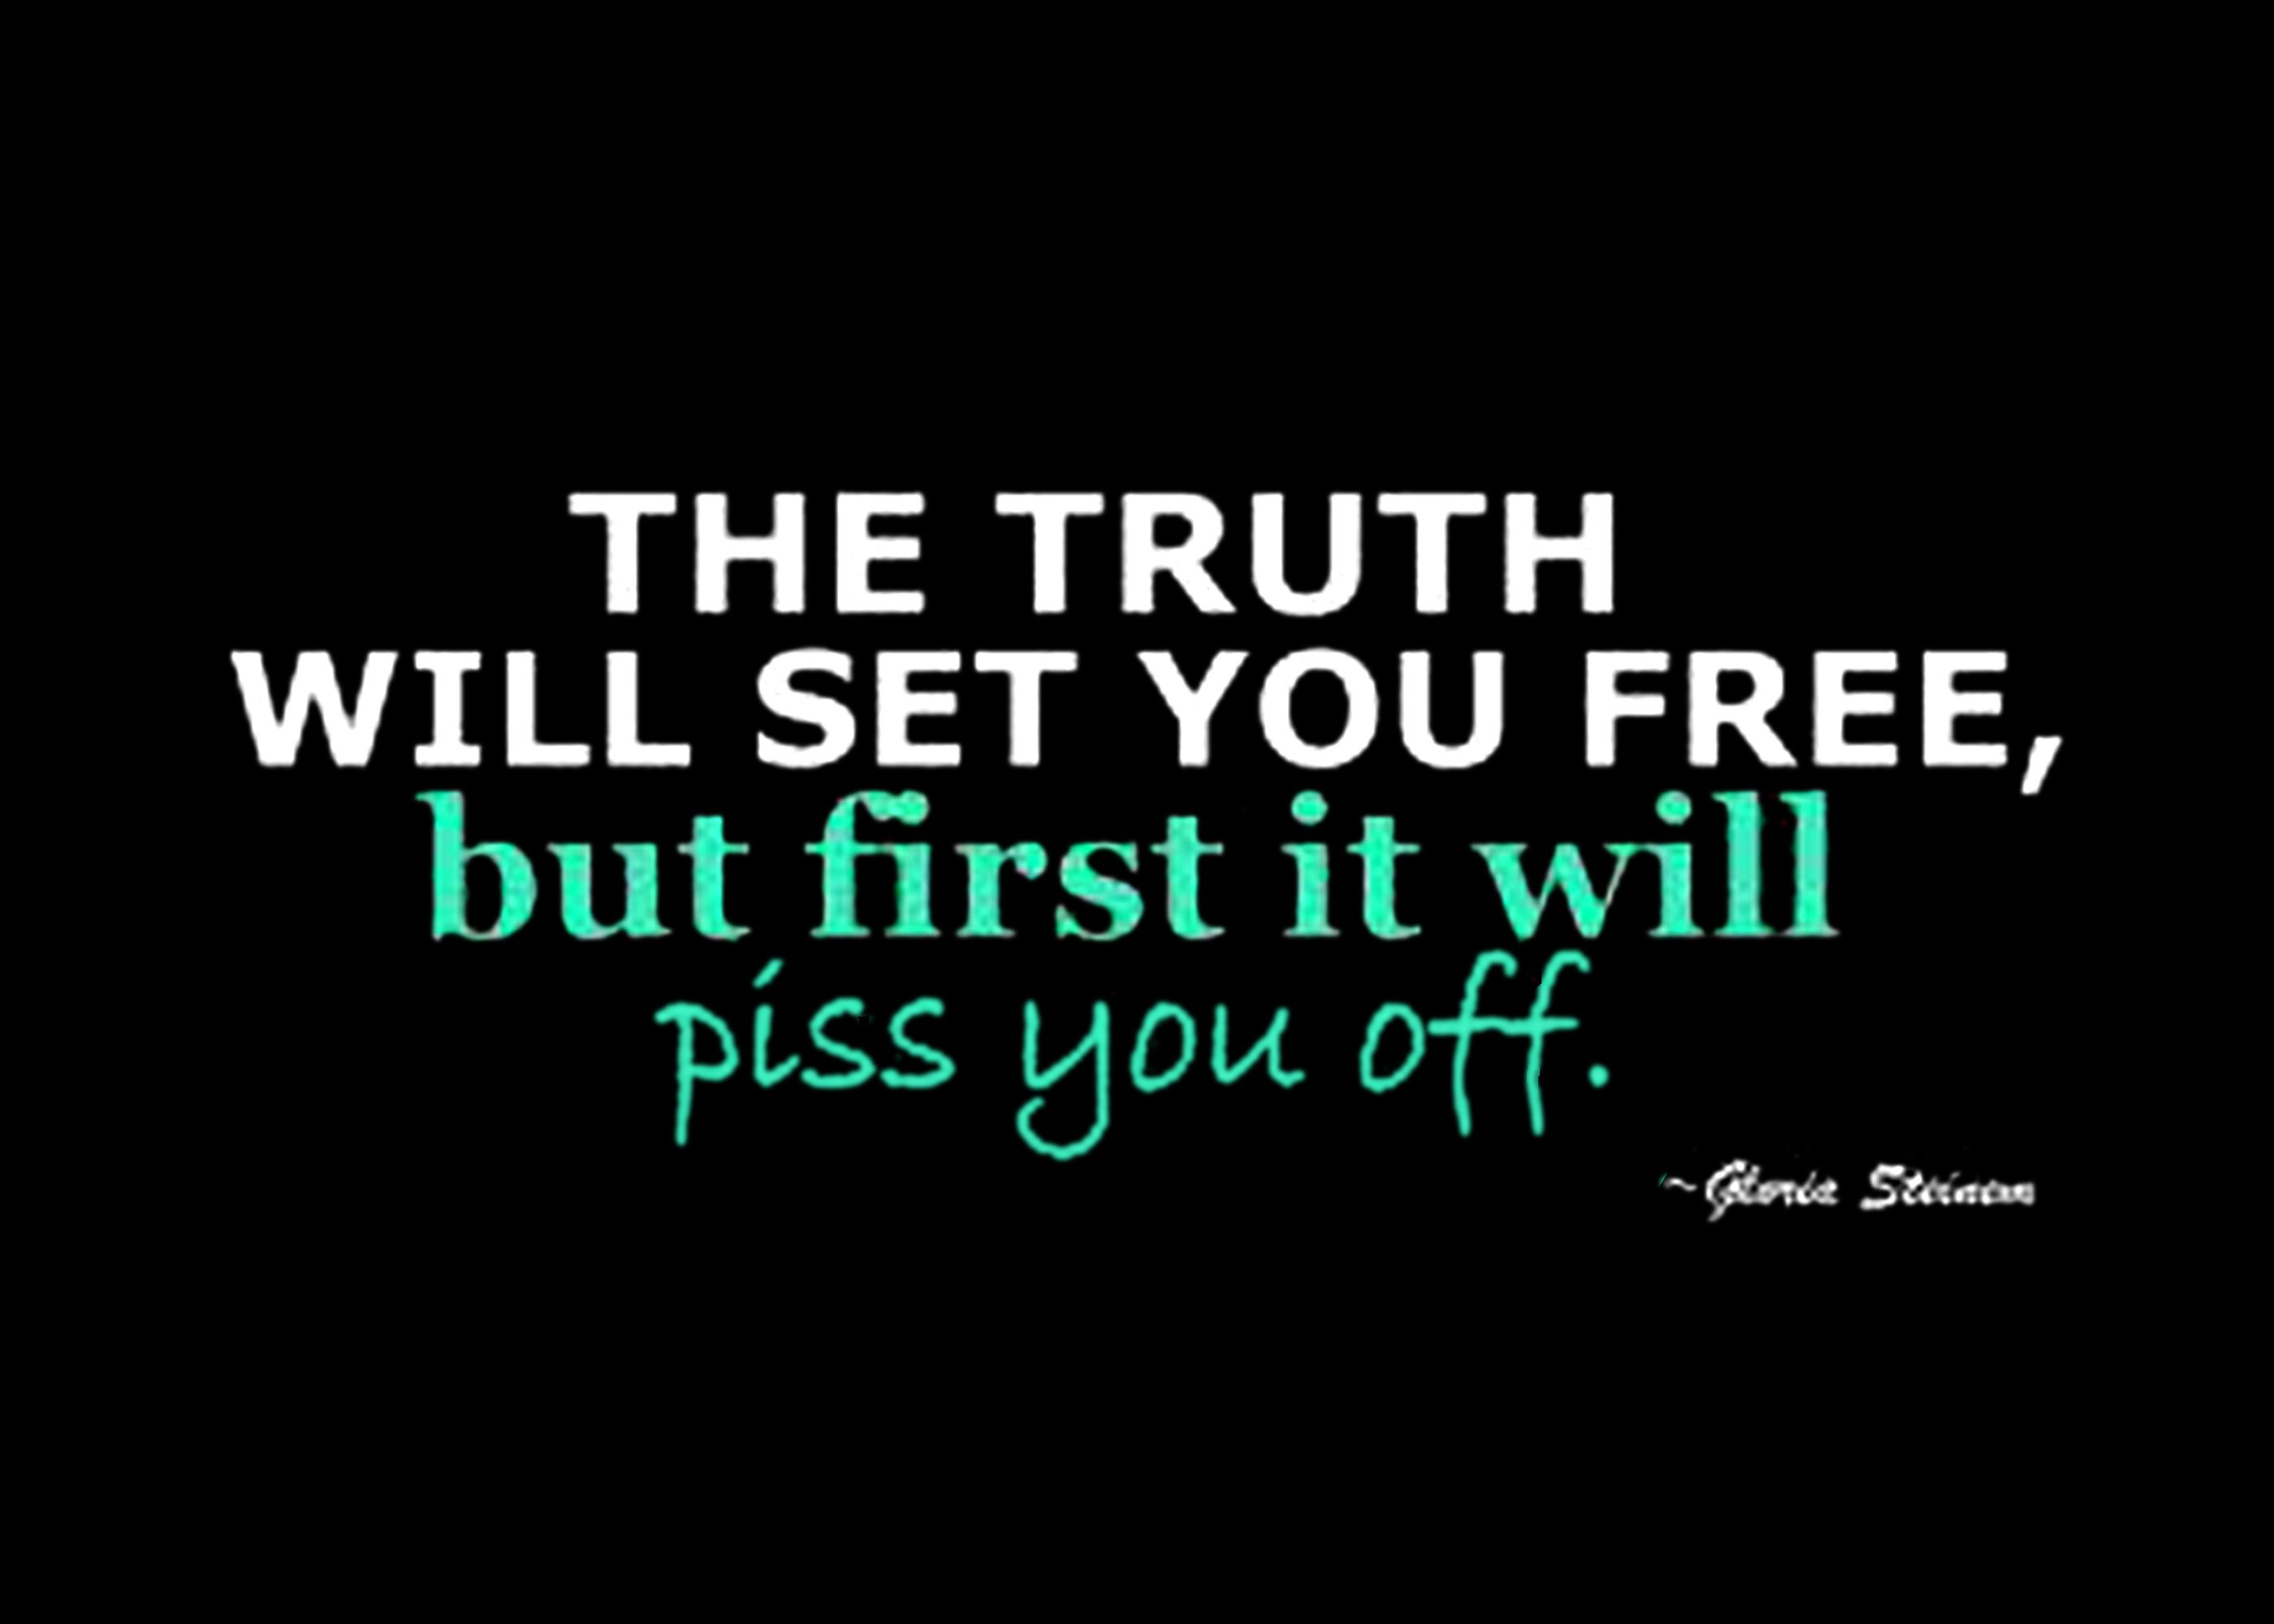 The Truth Sets Us Free Quotes. QuotesGram